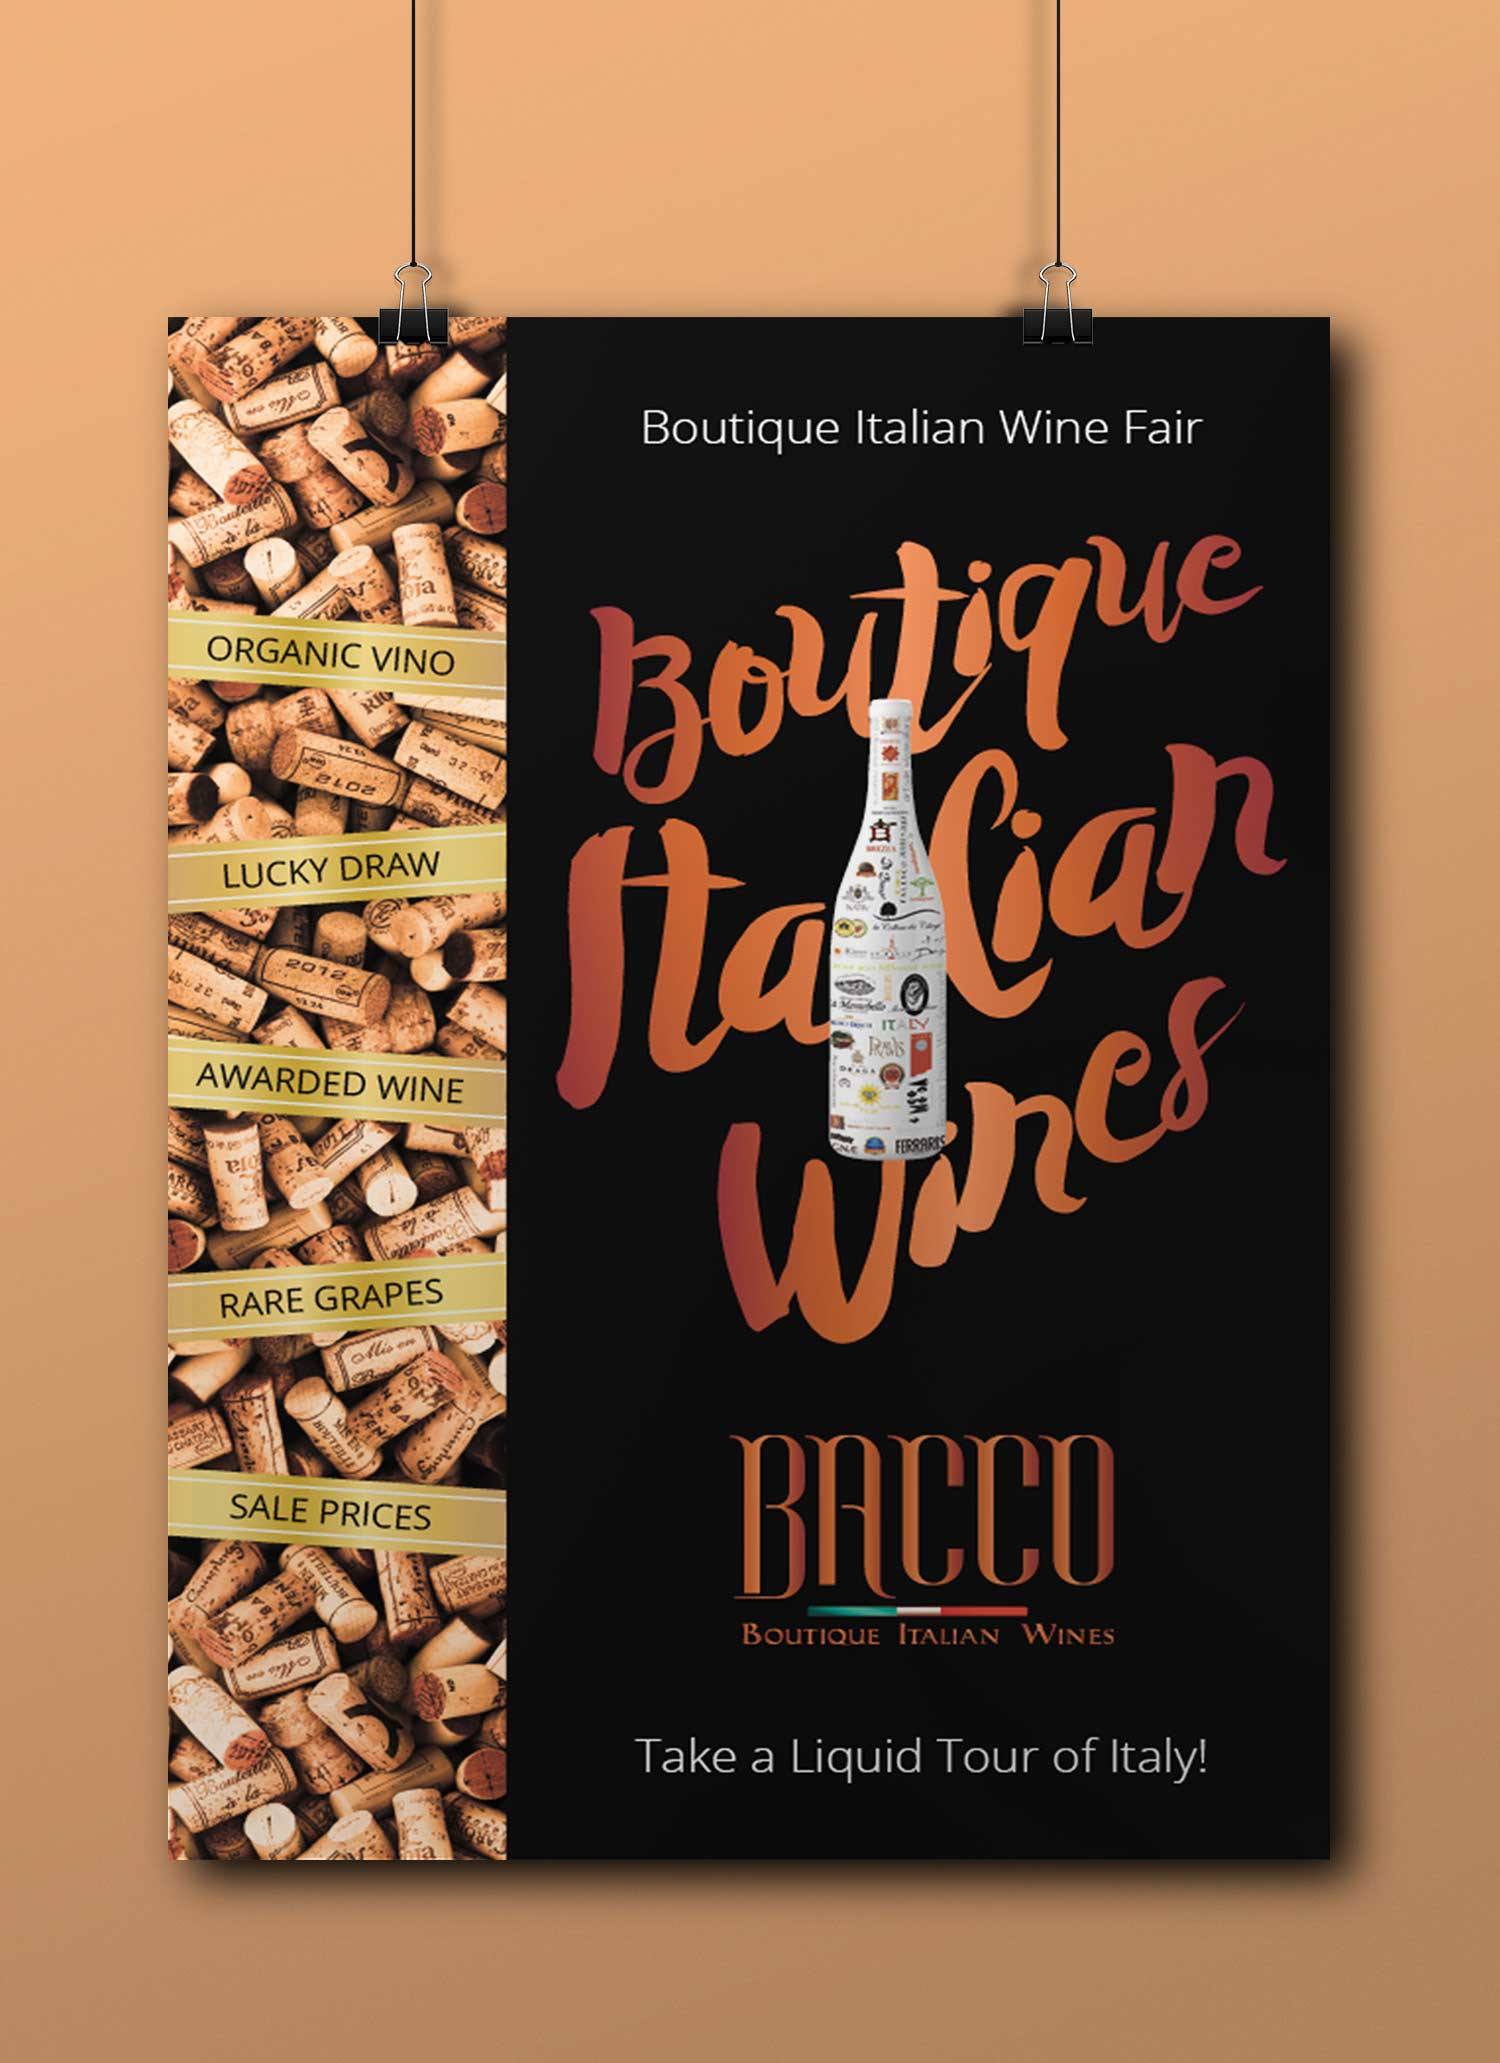 Boutique Italian Wine Fairs - Every three months, Bacco invites 250 guests to taste 20 or so of the 300+ wines that make up their shop offerings. These are red, white, rosé, sparkling and dessert wines flown in from organic wineries across Italy.